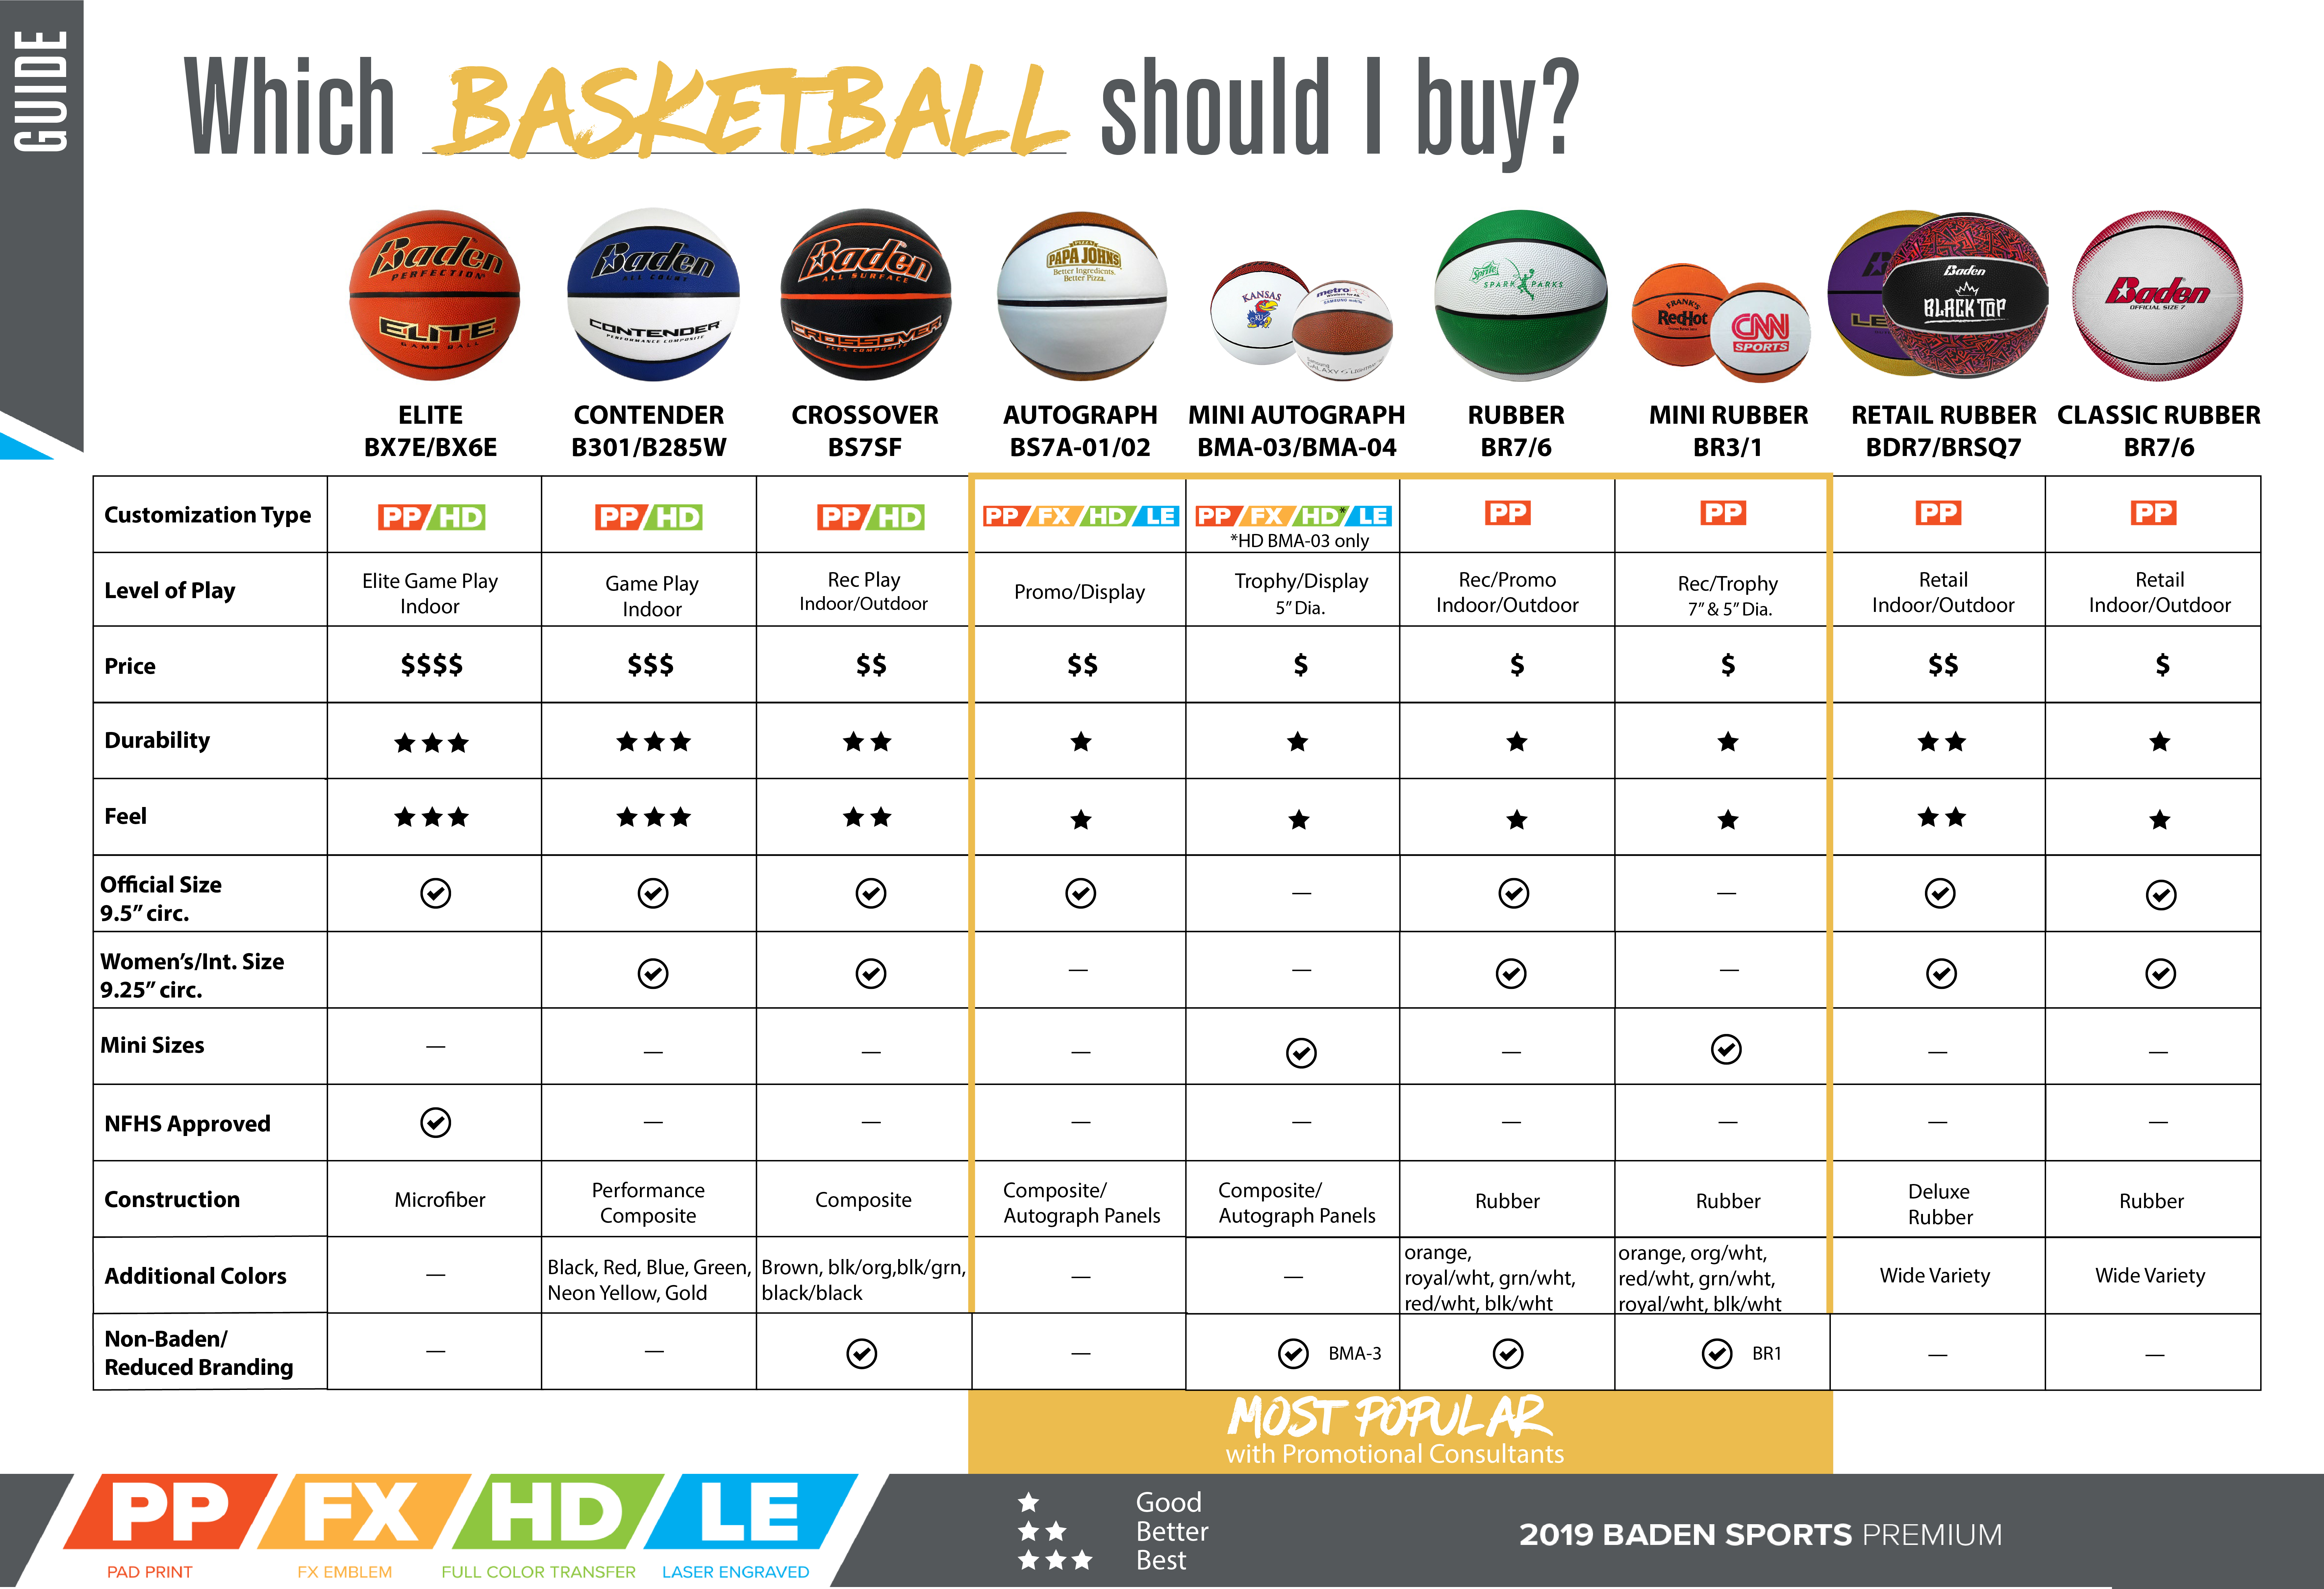 Basketball Comparison Chart Buying Guide